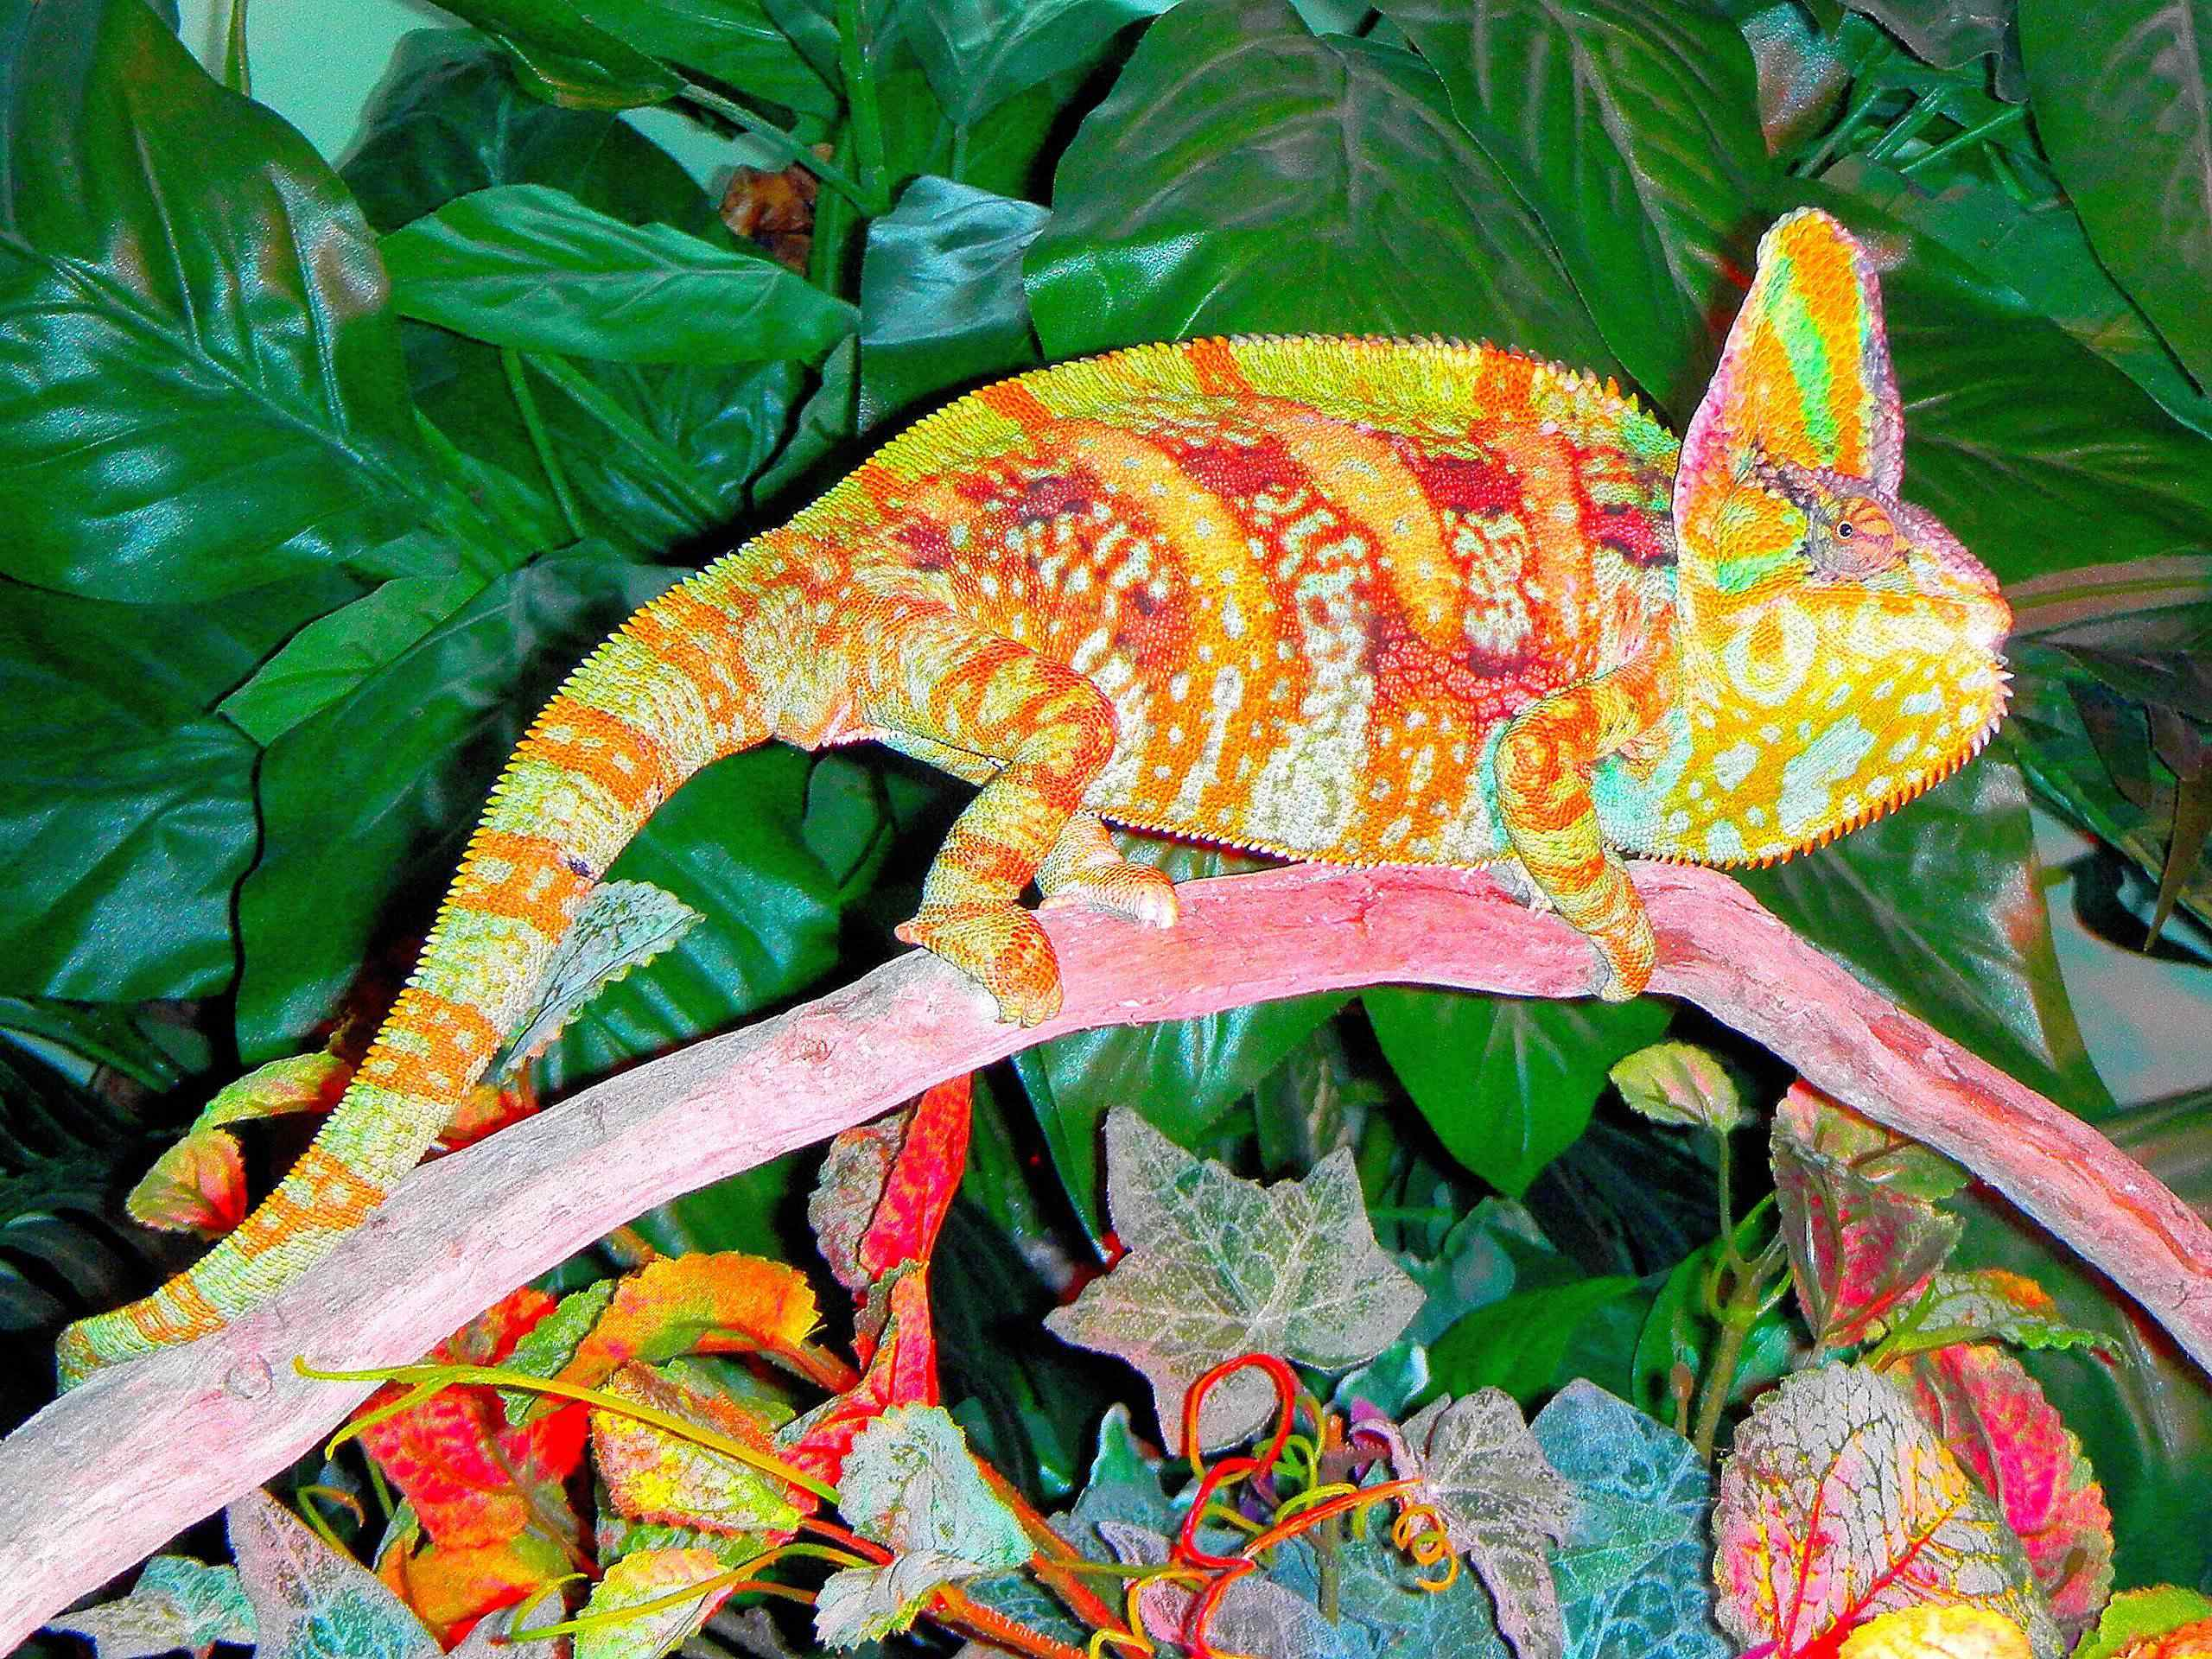 Male Veiled Chameleon Doing Highlighter Impression reptiles 23877195 2560 1920 Top seres coloridos